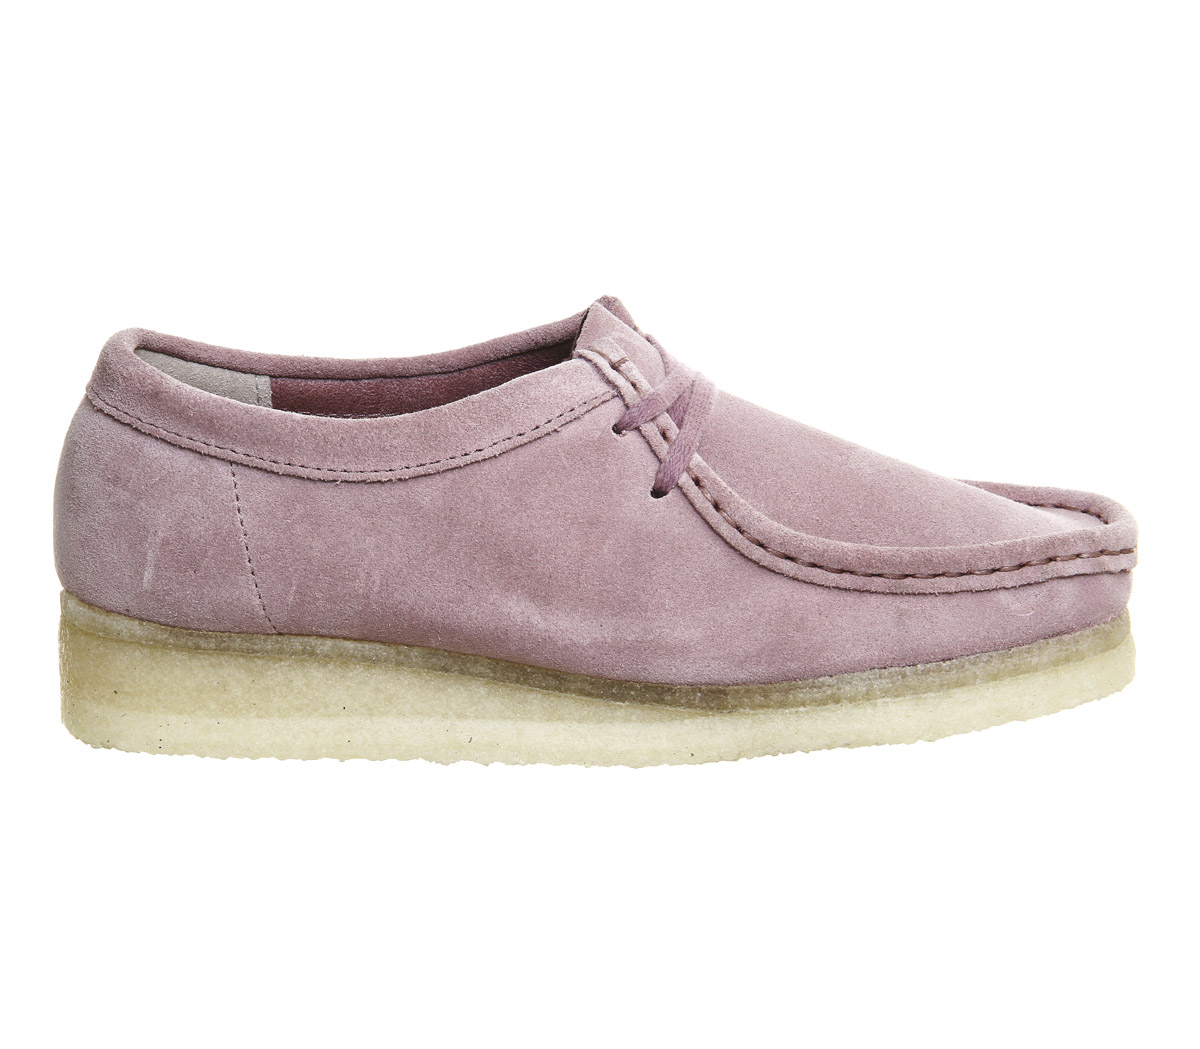 Womens Wallabees | Womens Wallabees Shoes | Clarks Wallabees Women